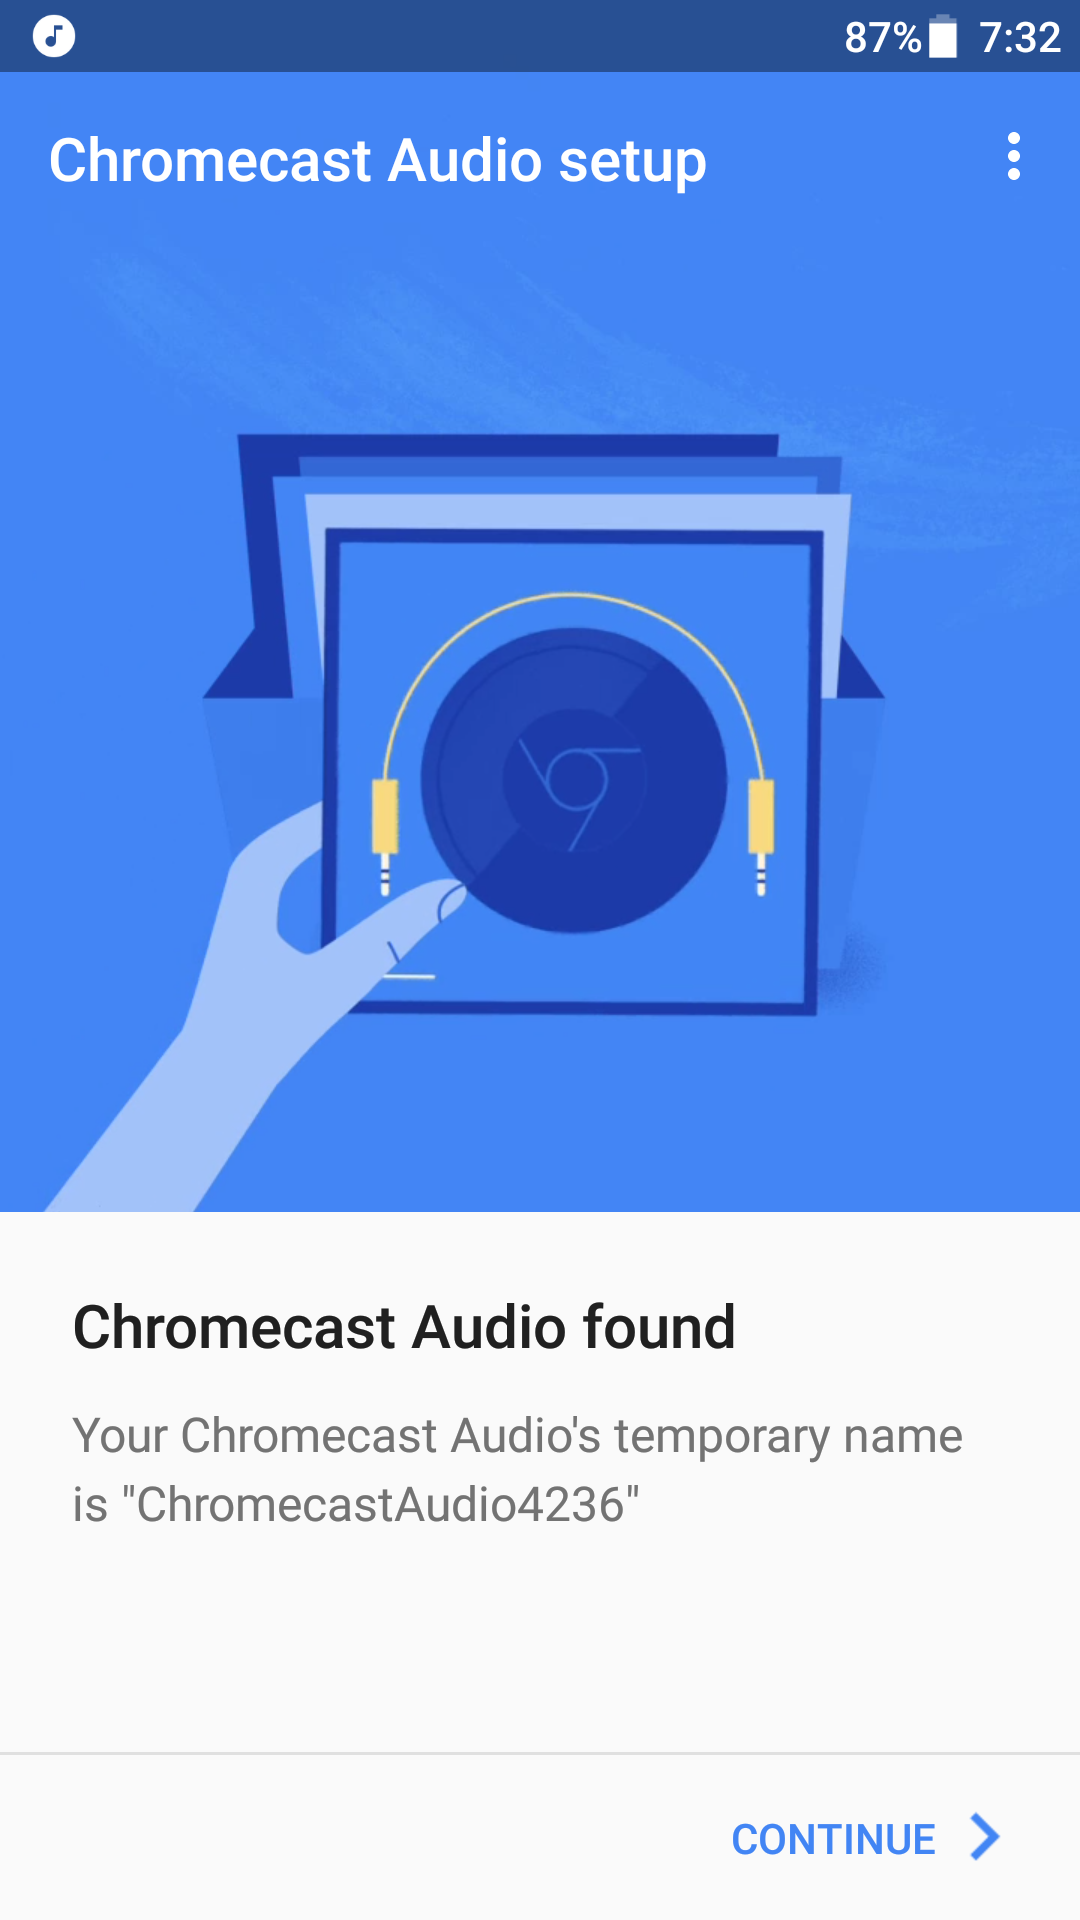 So, I decided to purchase a Chromecast Audio, plug it into my headphones  and give it a try.